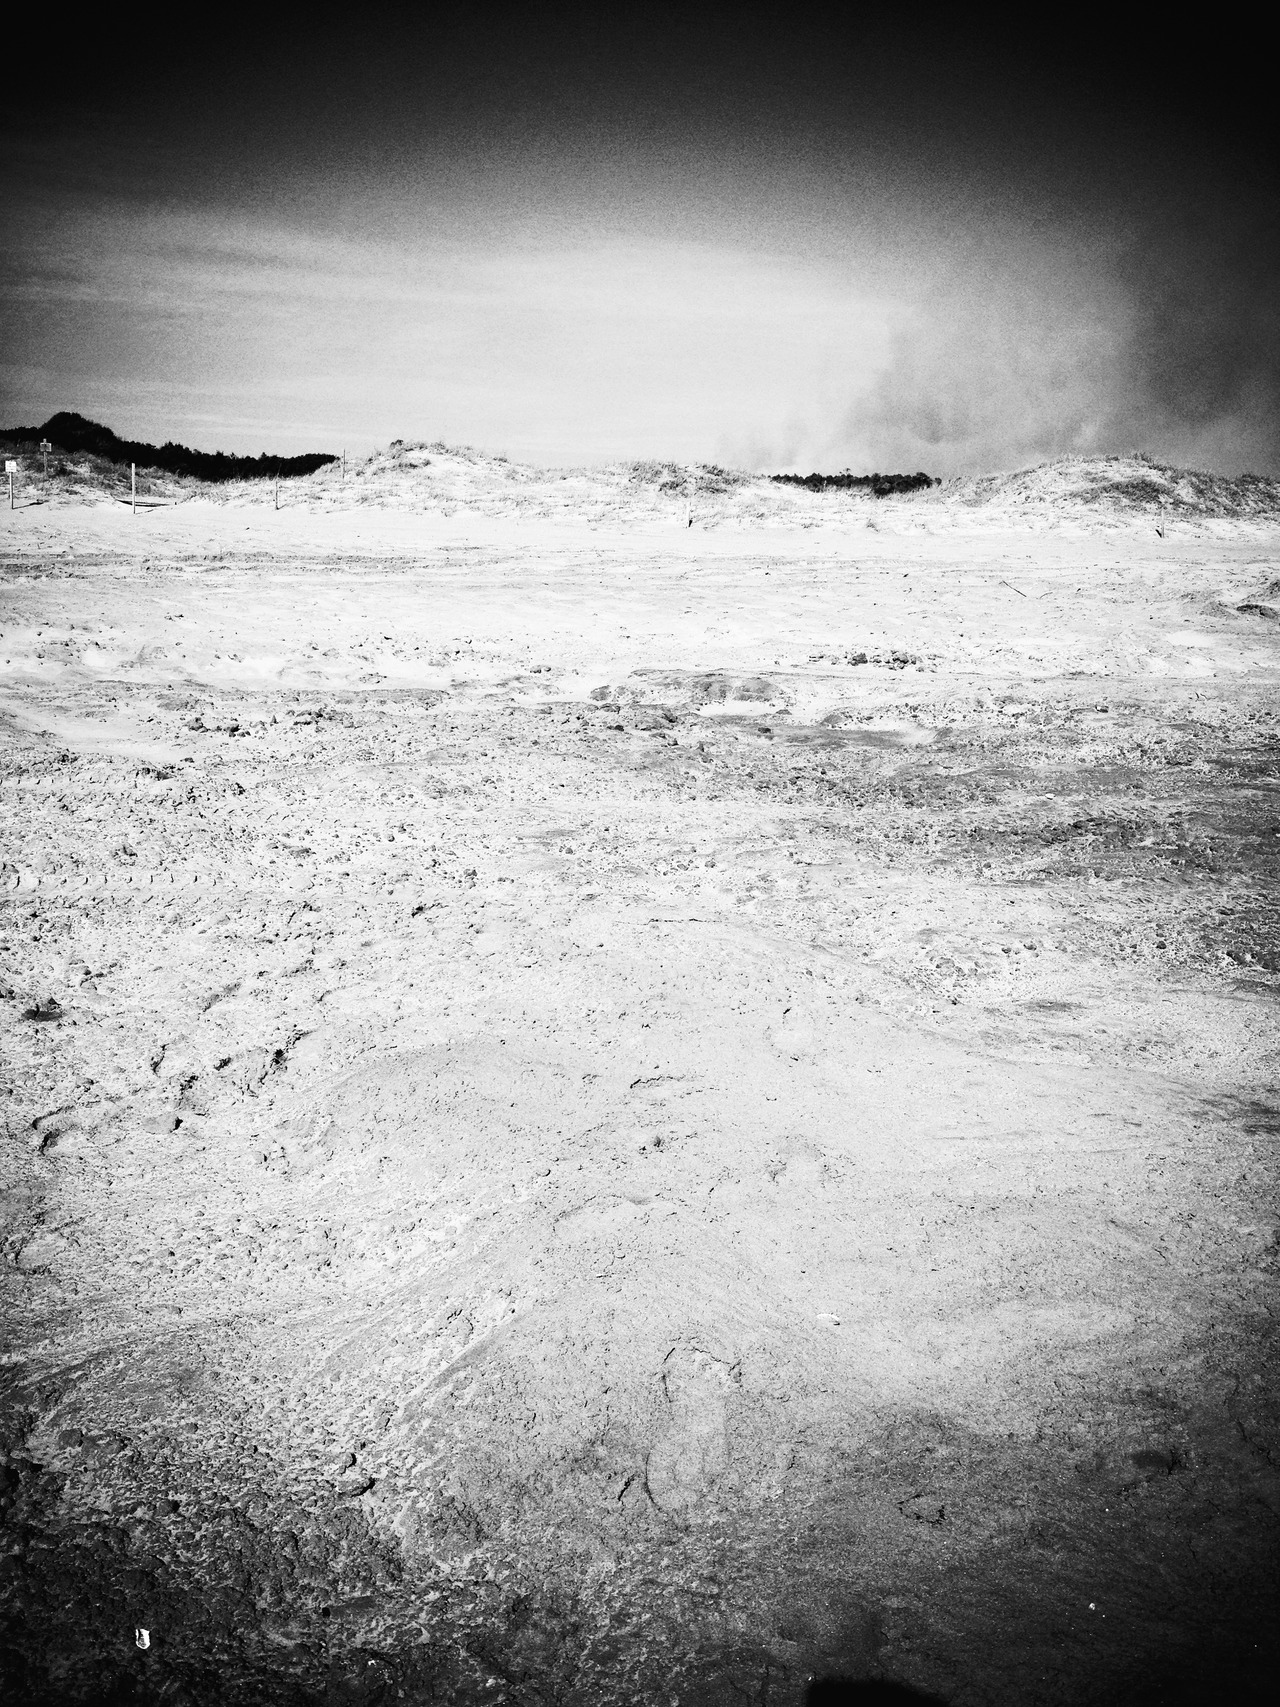 After the calm #peppersearching #pepper #photos #beach